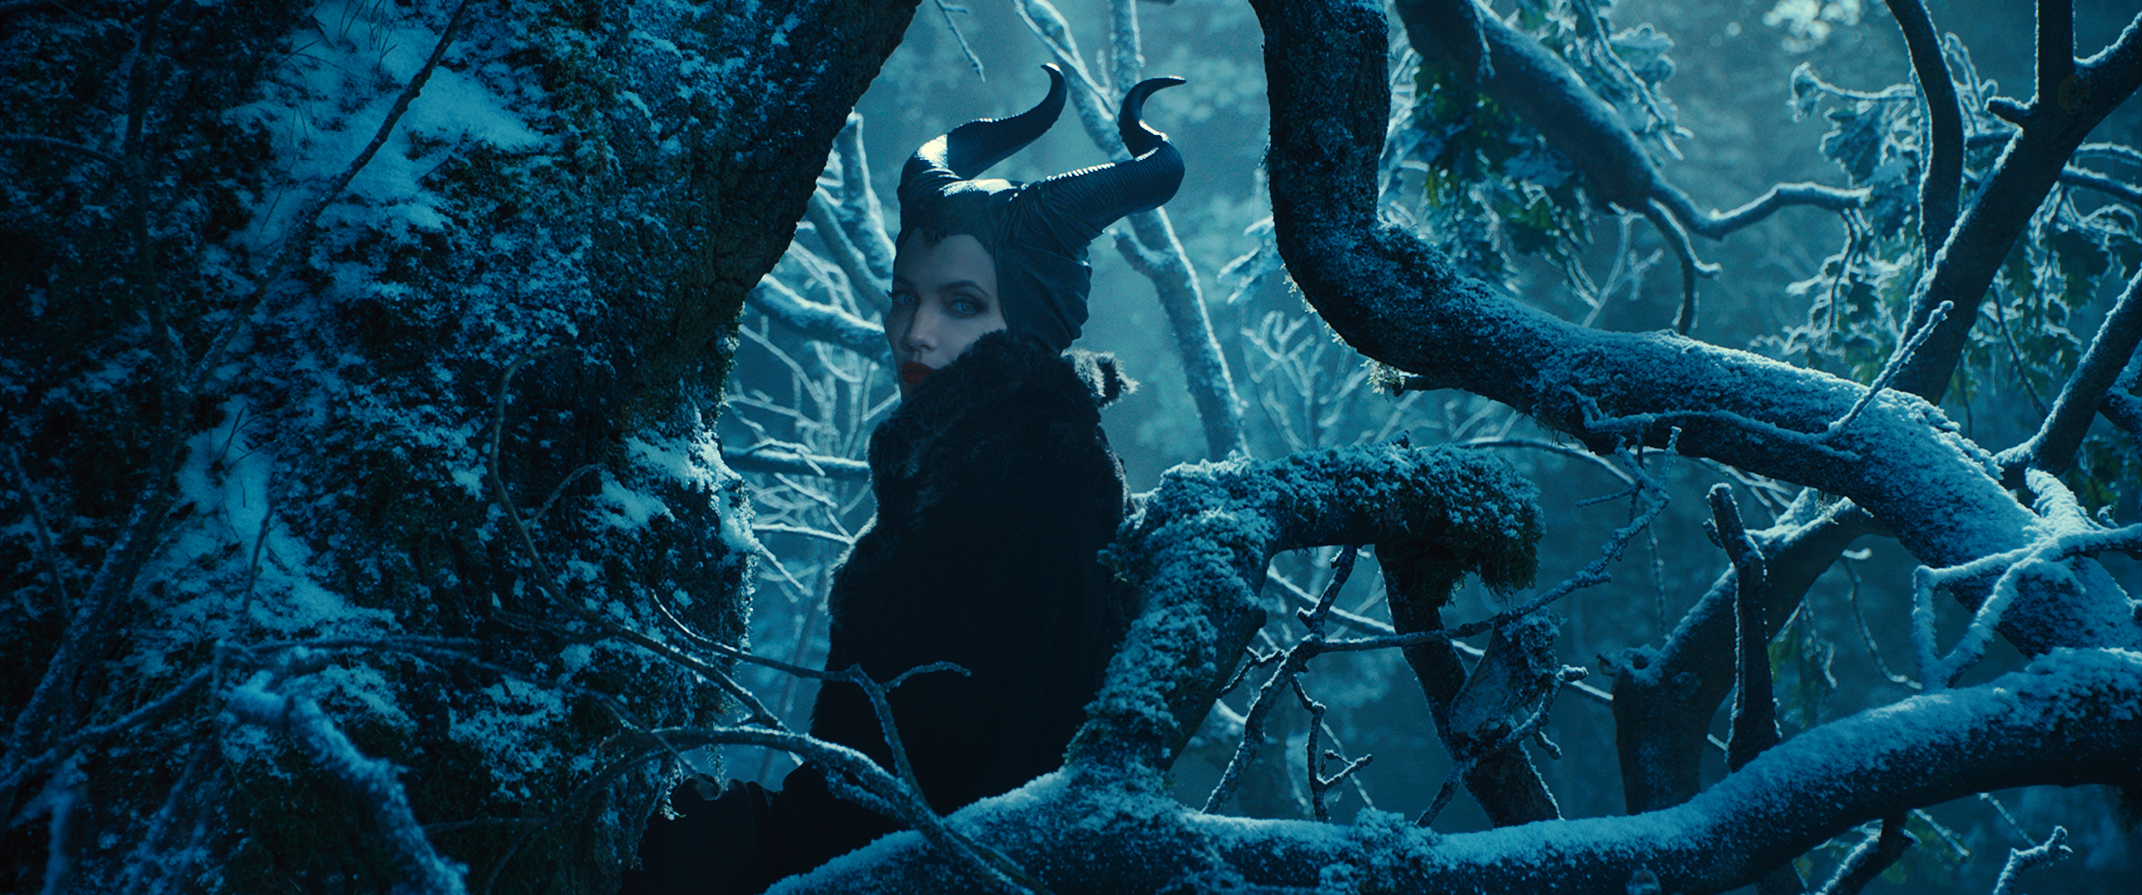 Maleficent-Official Poster Banner PROMO PHOTOS-14NOVEMBRO2013-01